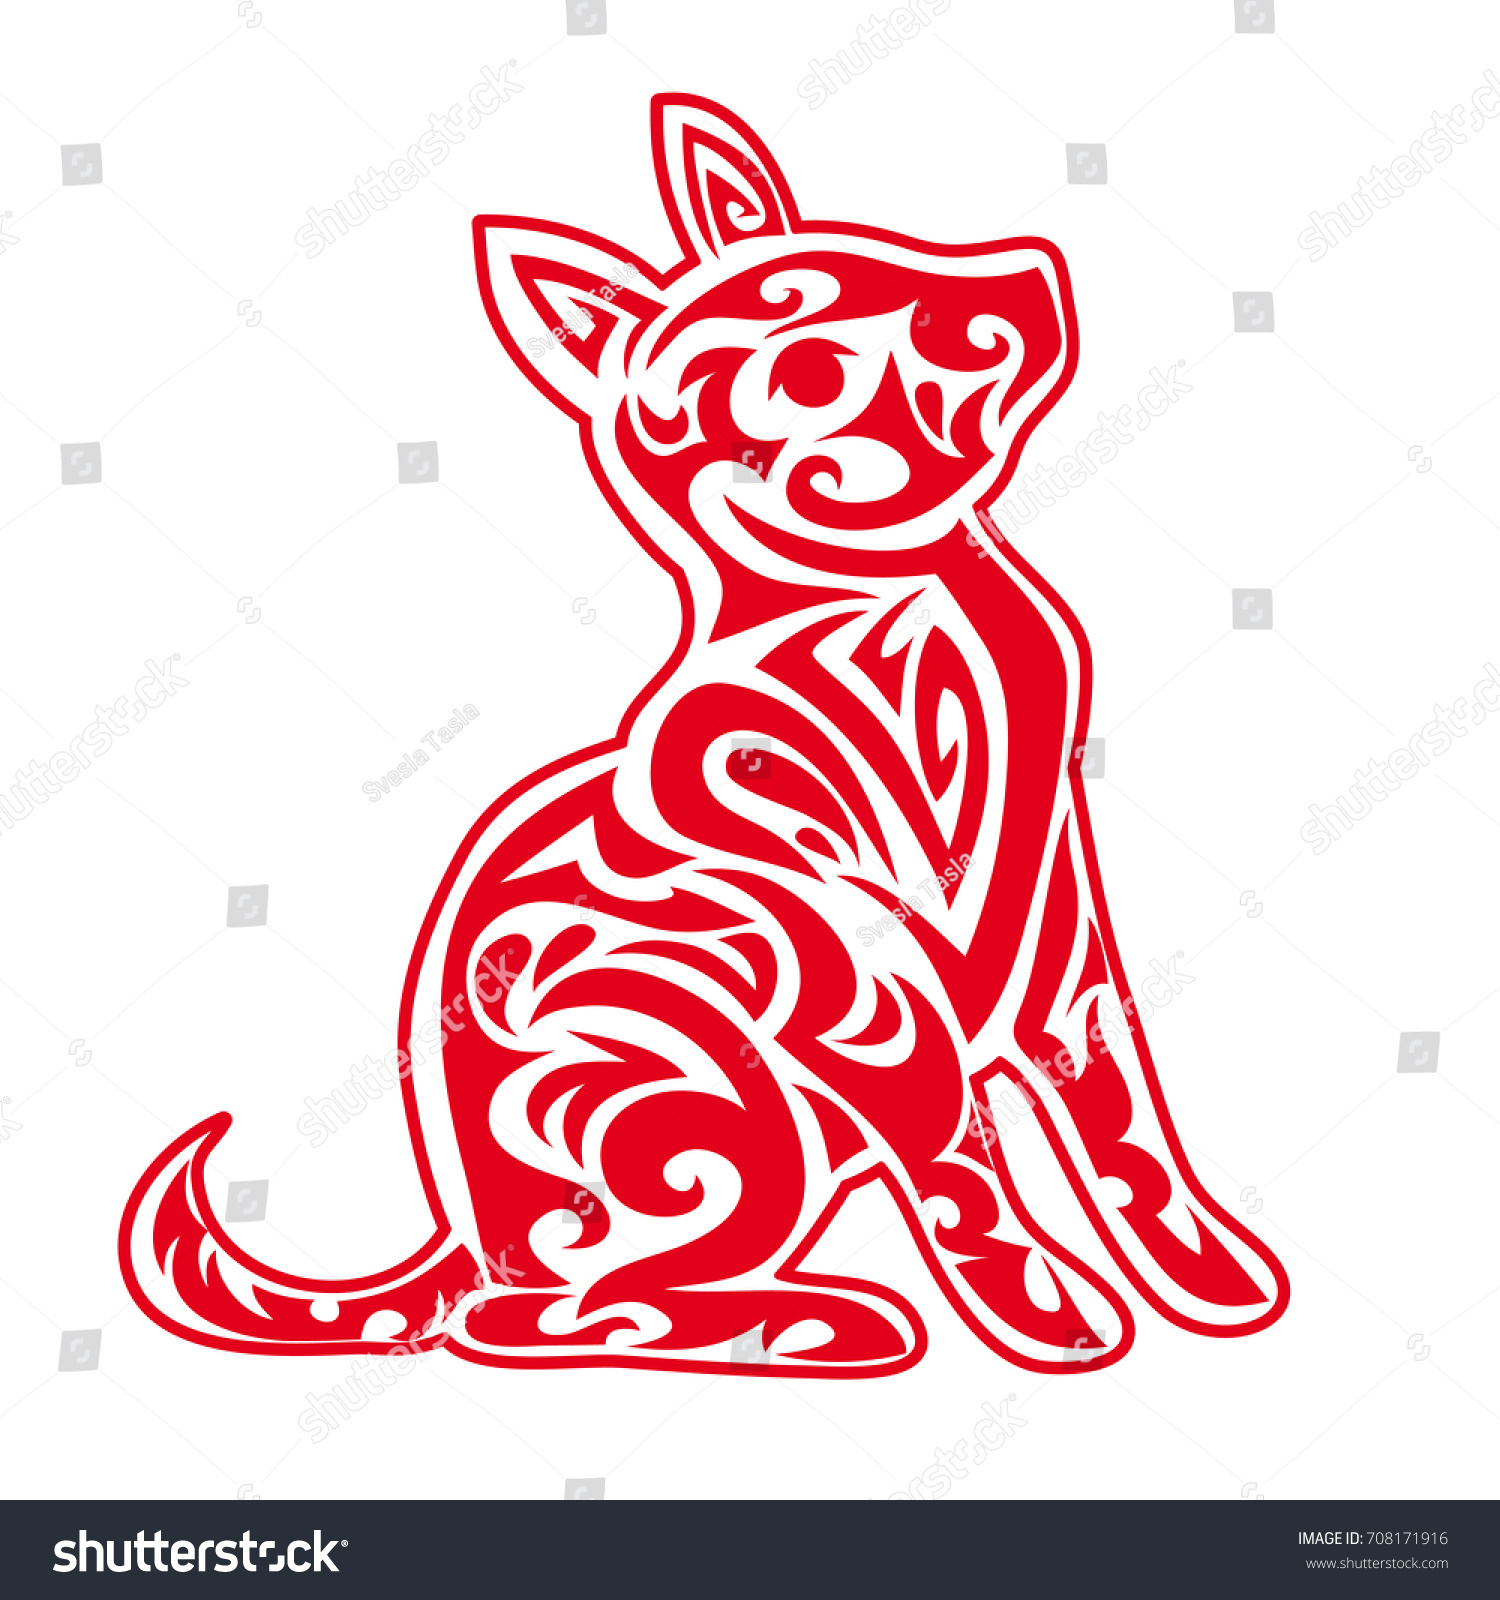 Red Dog Silhouette Chinese Zodiac Animal Stock Vector Royalty Free